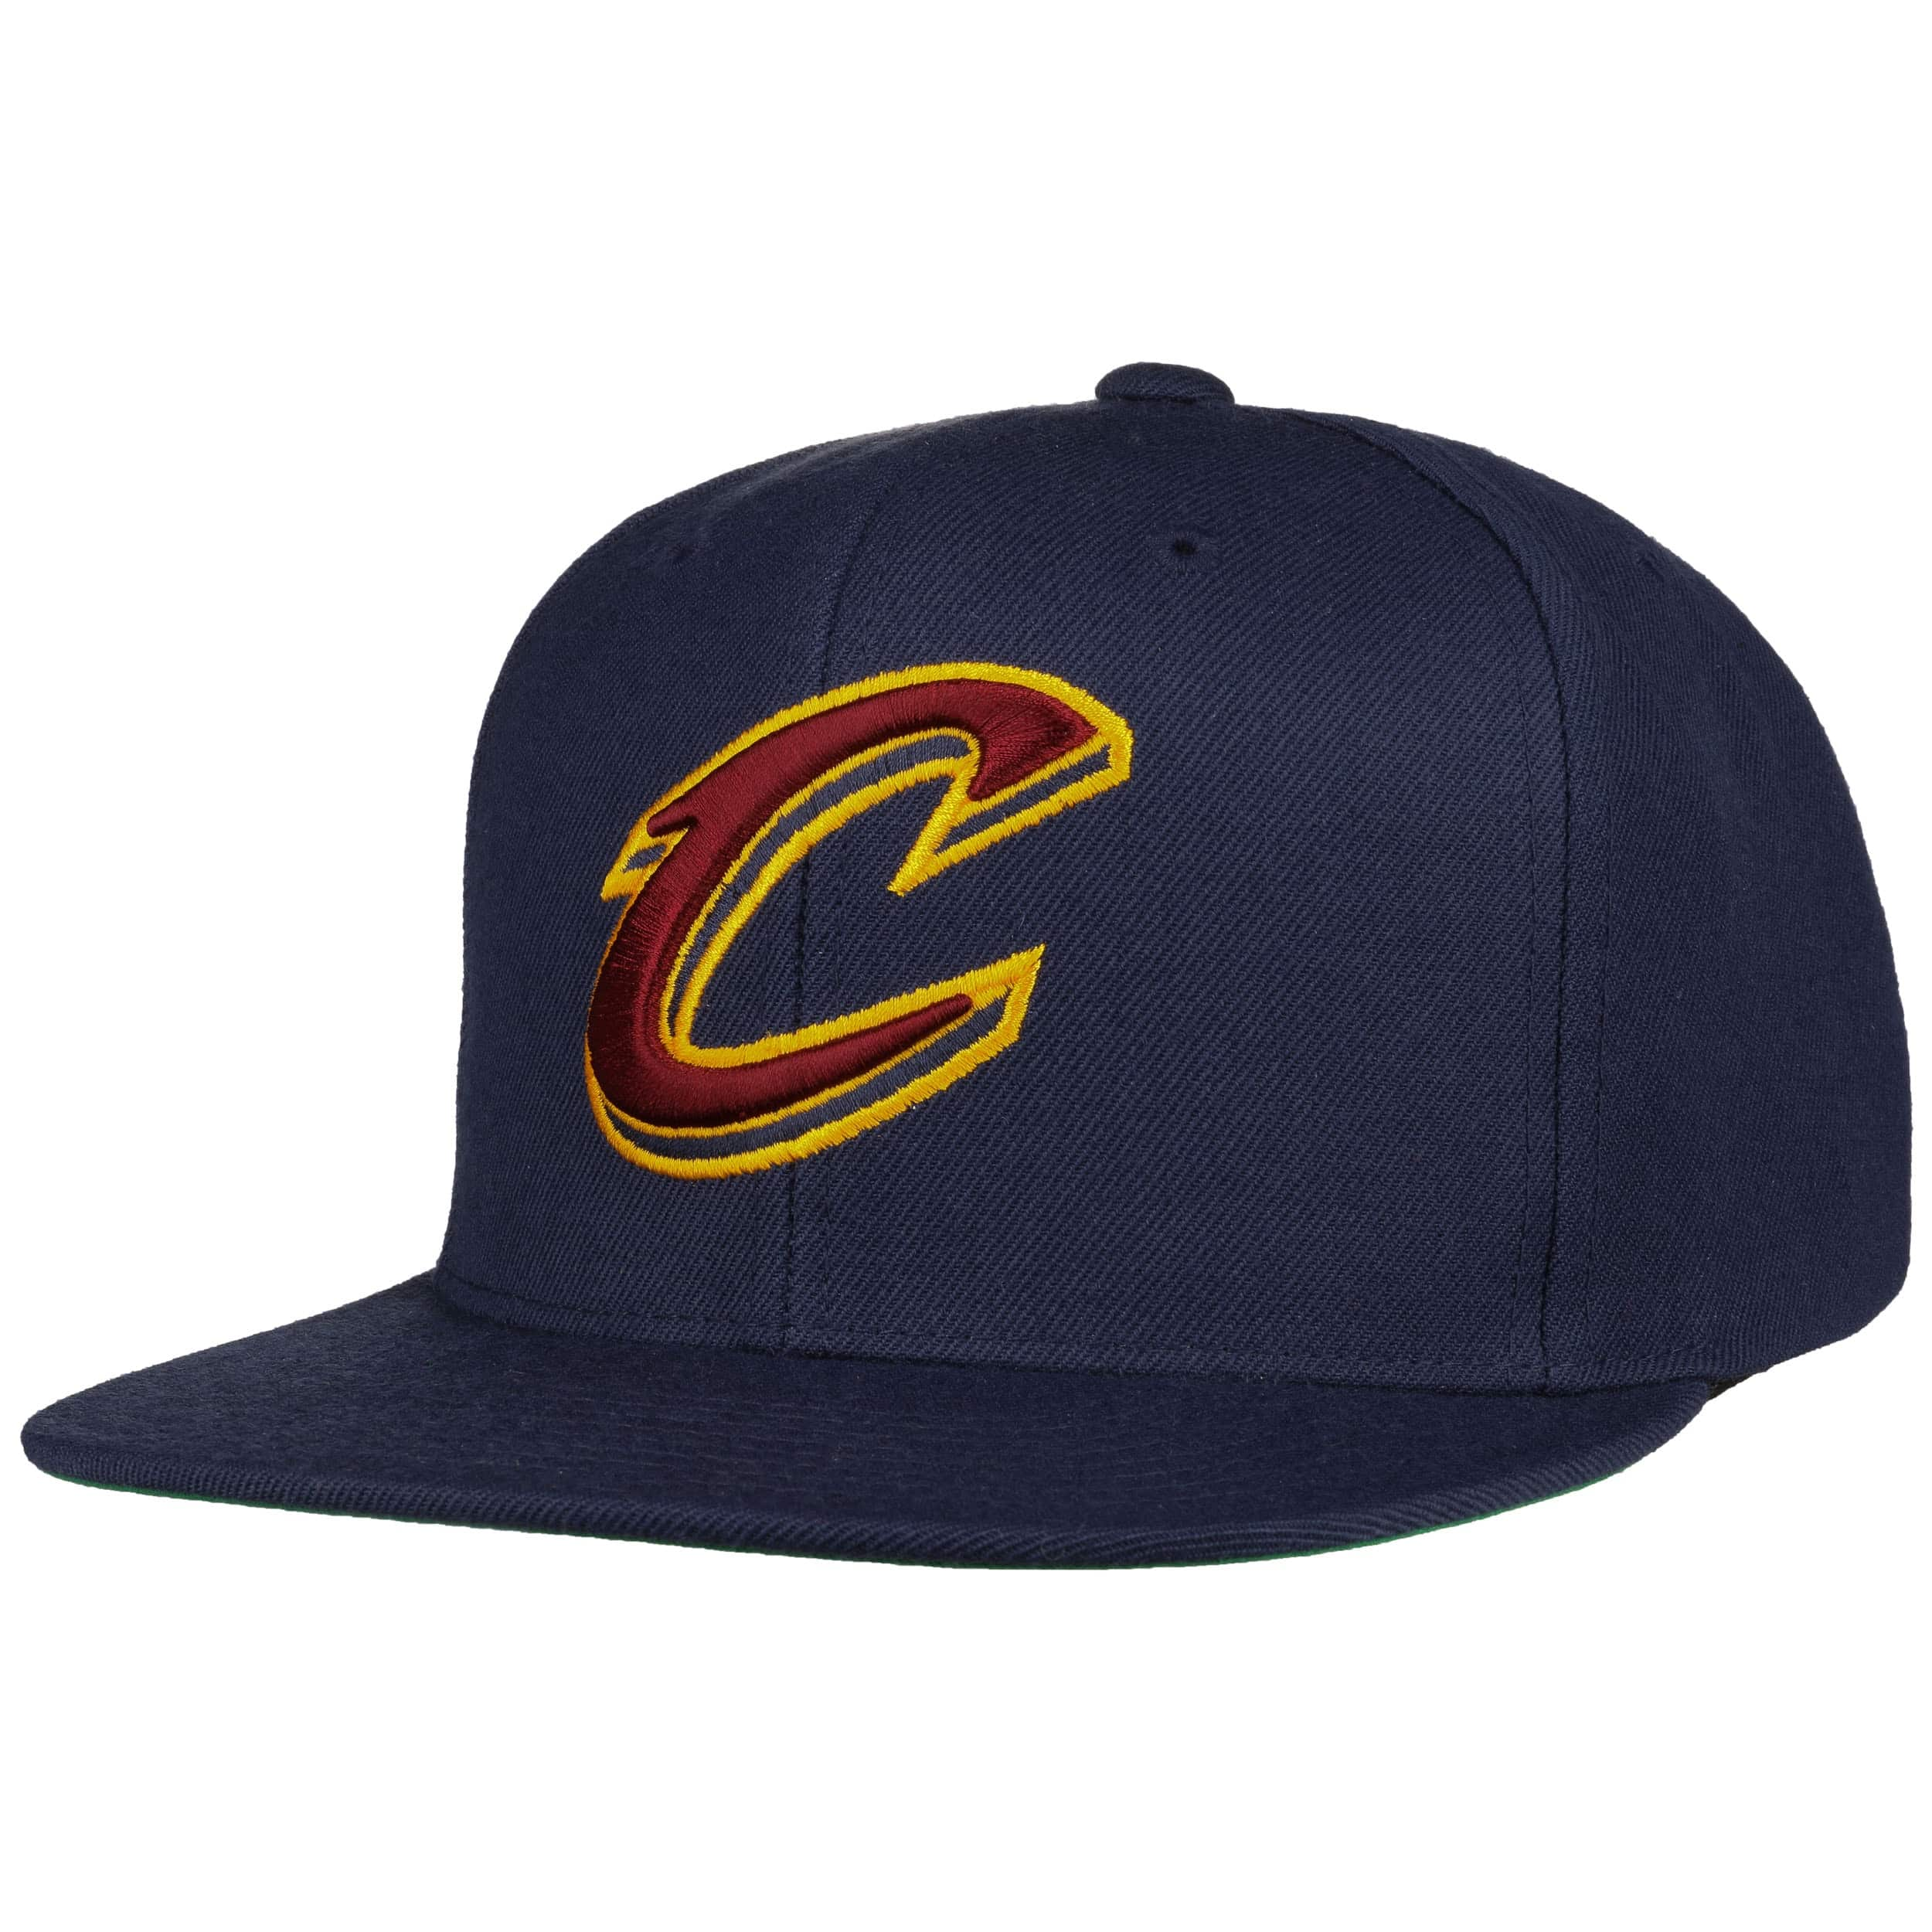 82f803d63 Wool Cavs Cap by Mitchell & Ness